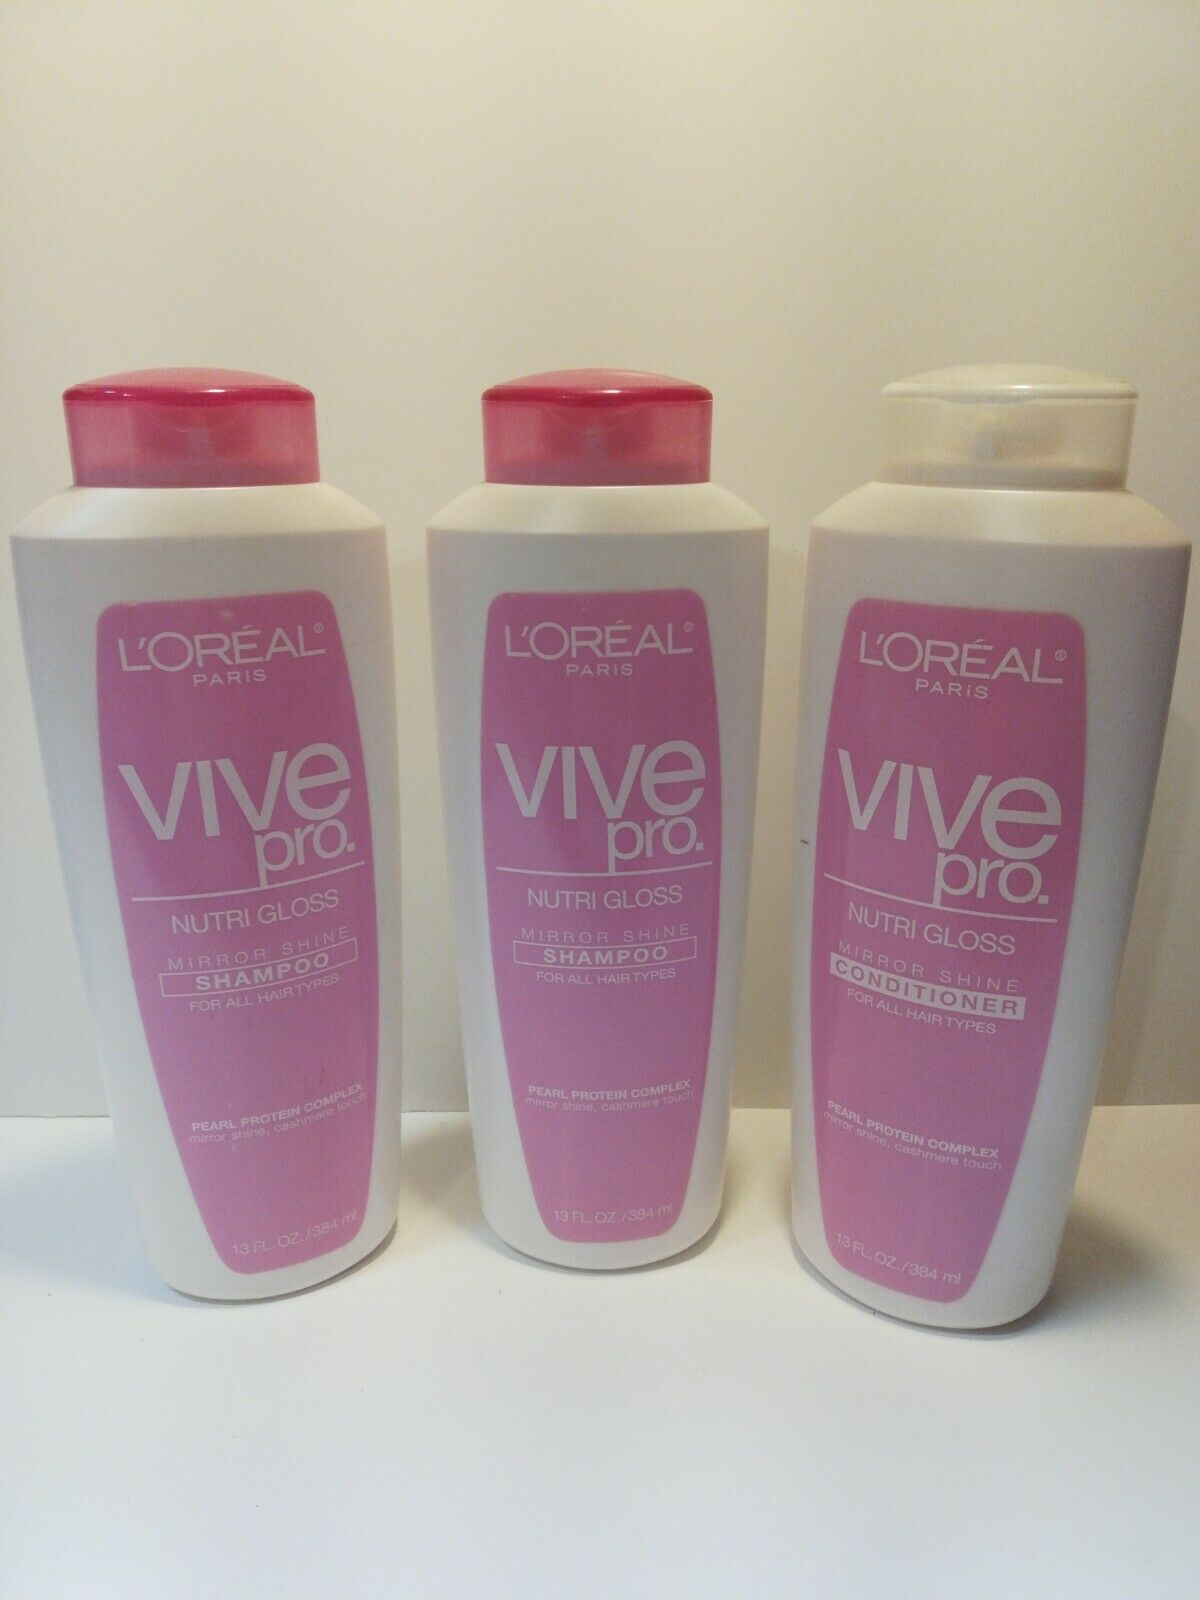 L'Oreal Paris Vive Pro Nutri Gloss Mirror Shine Shampoo & Conditioner Lot Of 3 - $69.20